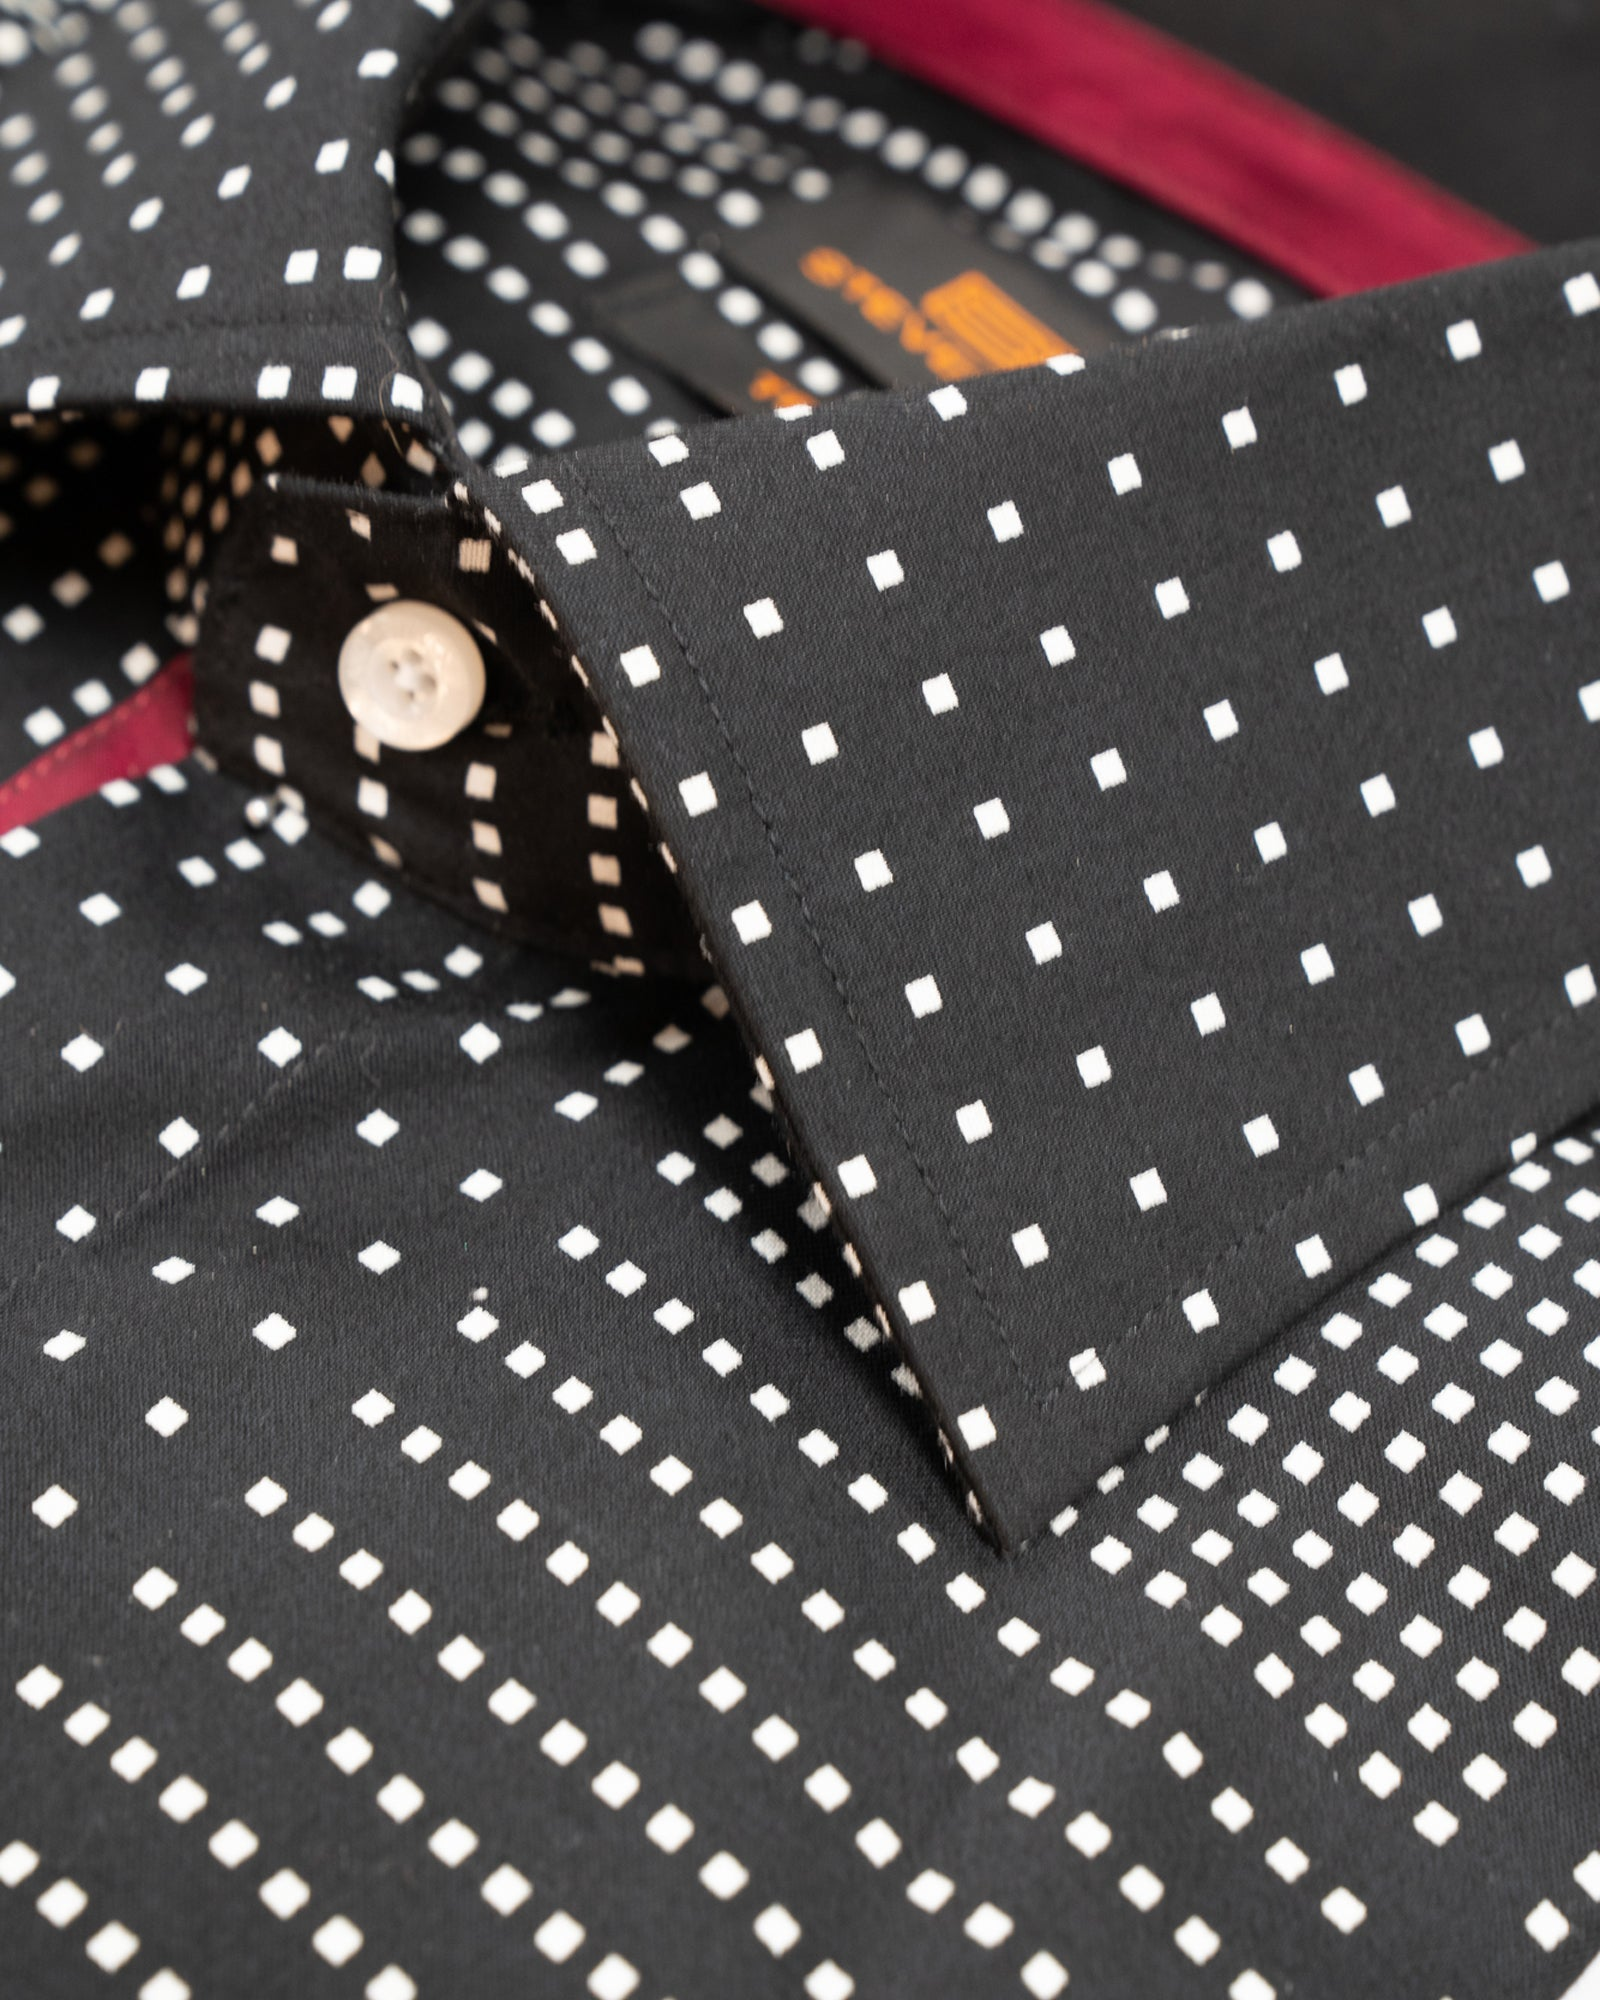 Black Grid Print Spread Collar Sport Shirt - Rainwater's Men's Clothing and Tuxedo Rental